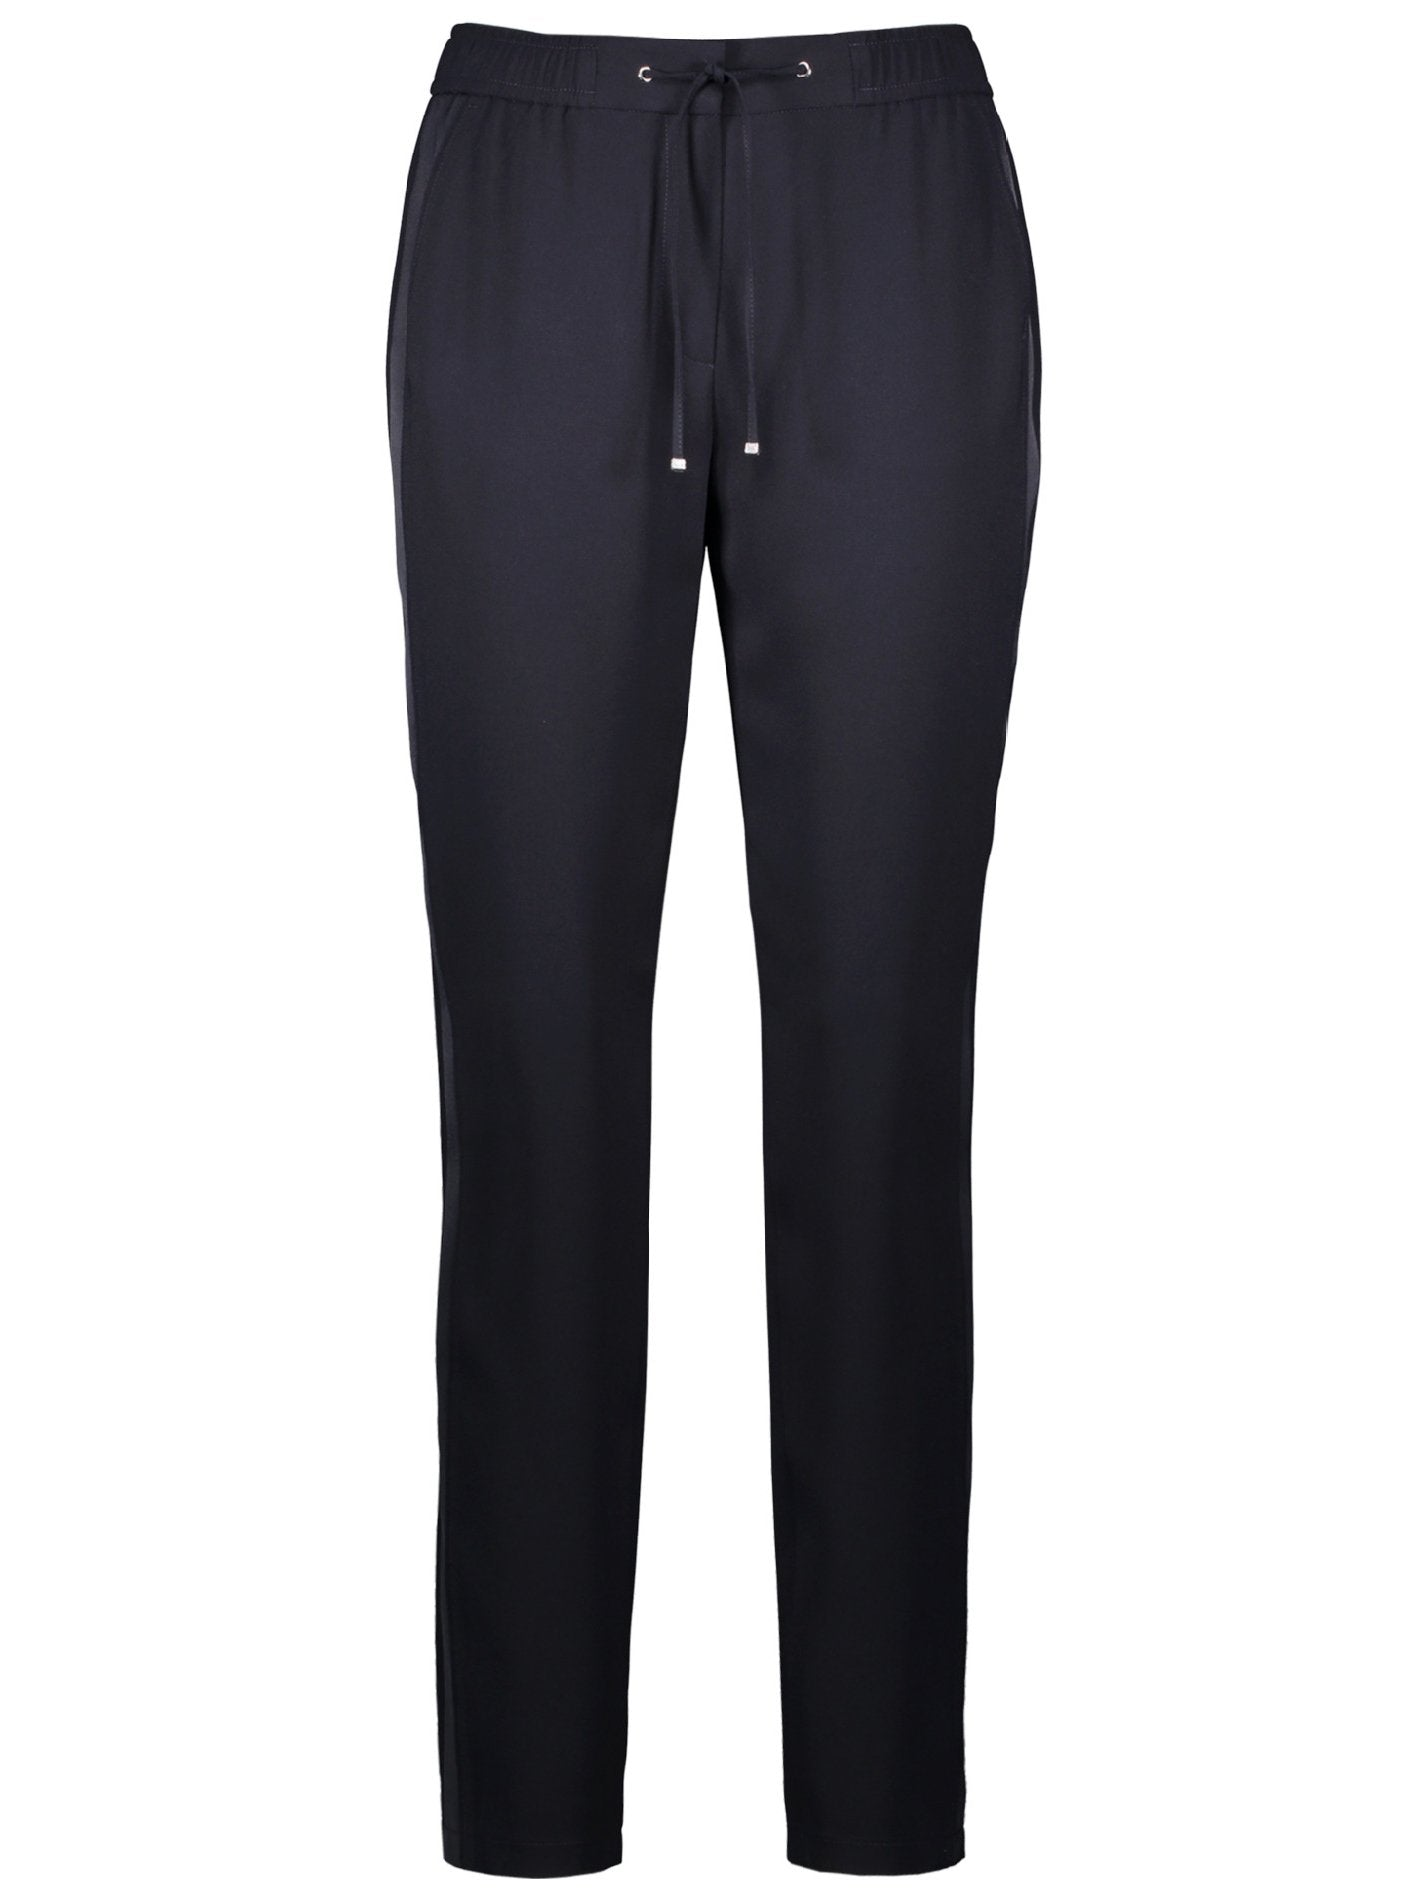 GERRY WEBER Navy Pull On Leisure Style Trouser